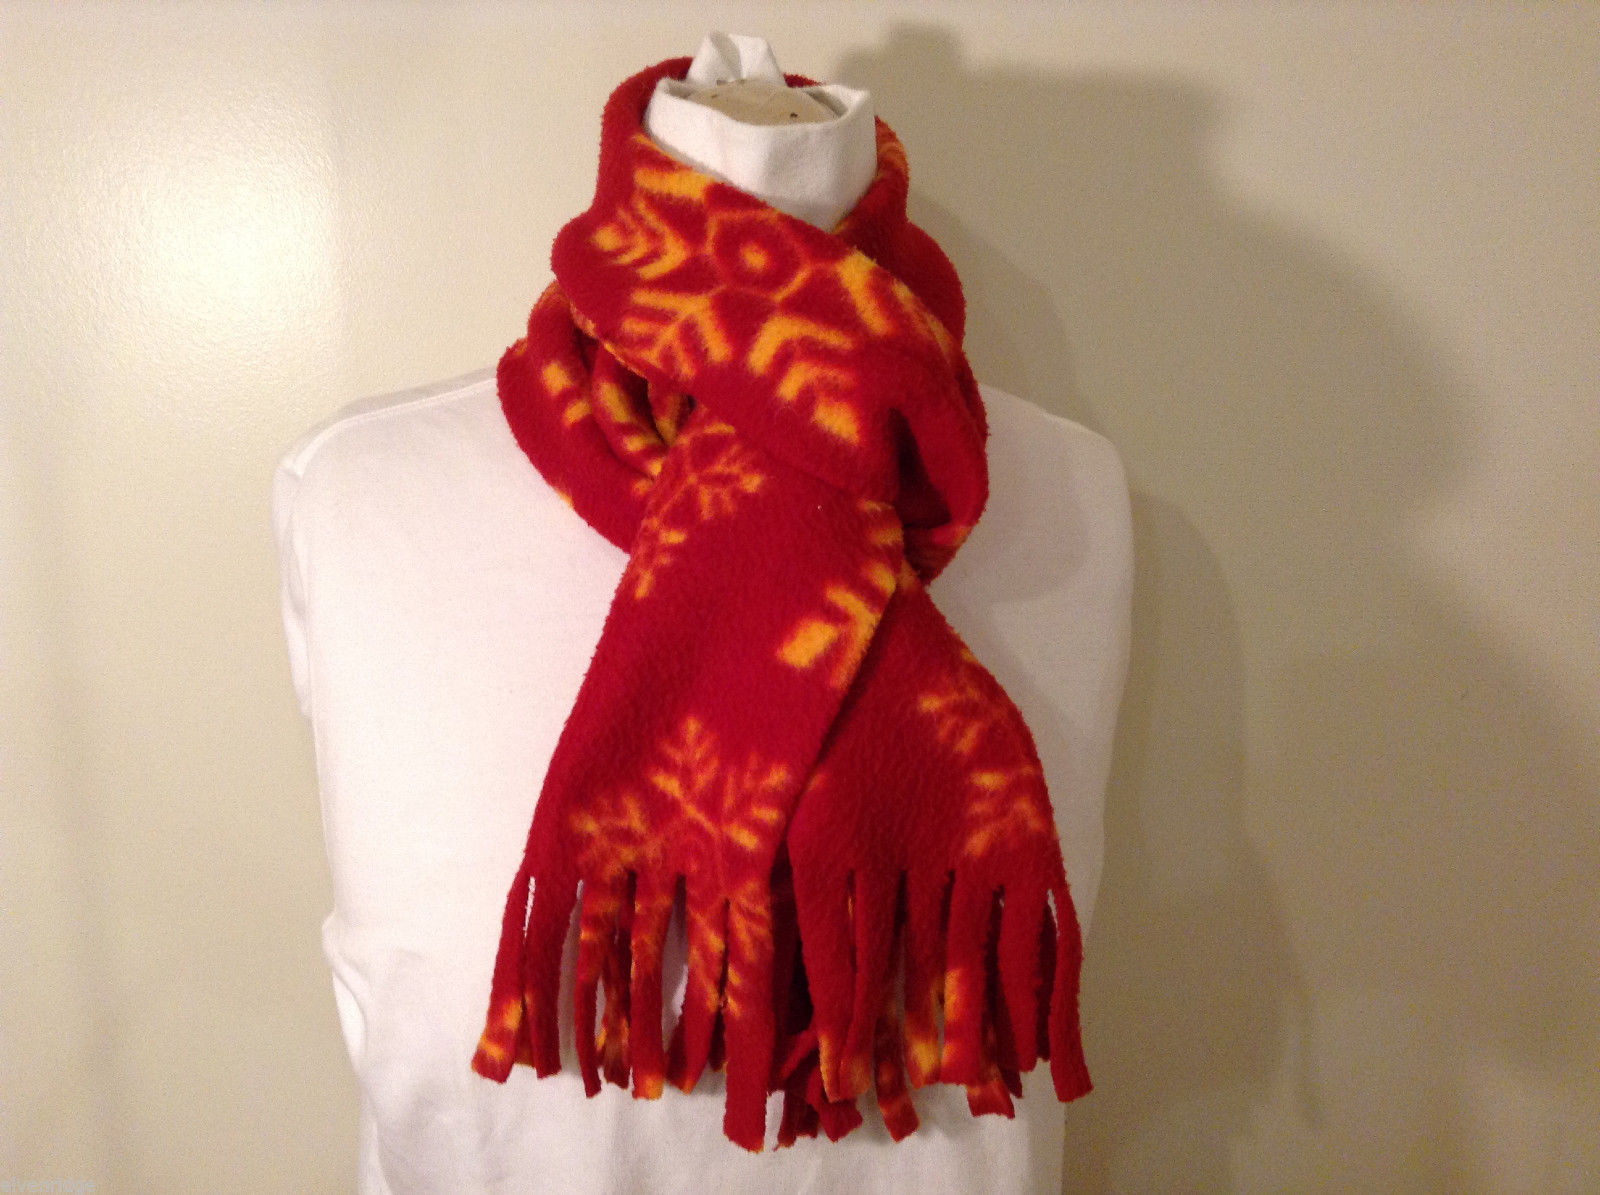 Red and Yellow Snowflakes Winter Fleece Scarf with fringed edges 100% polyester